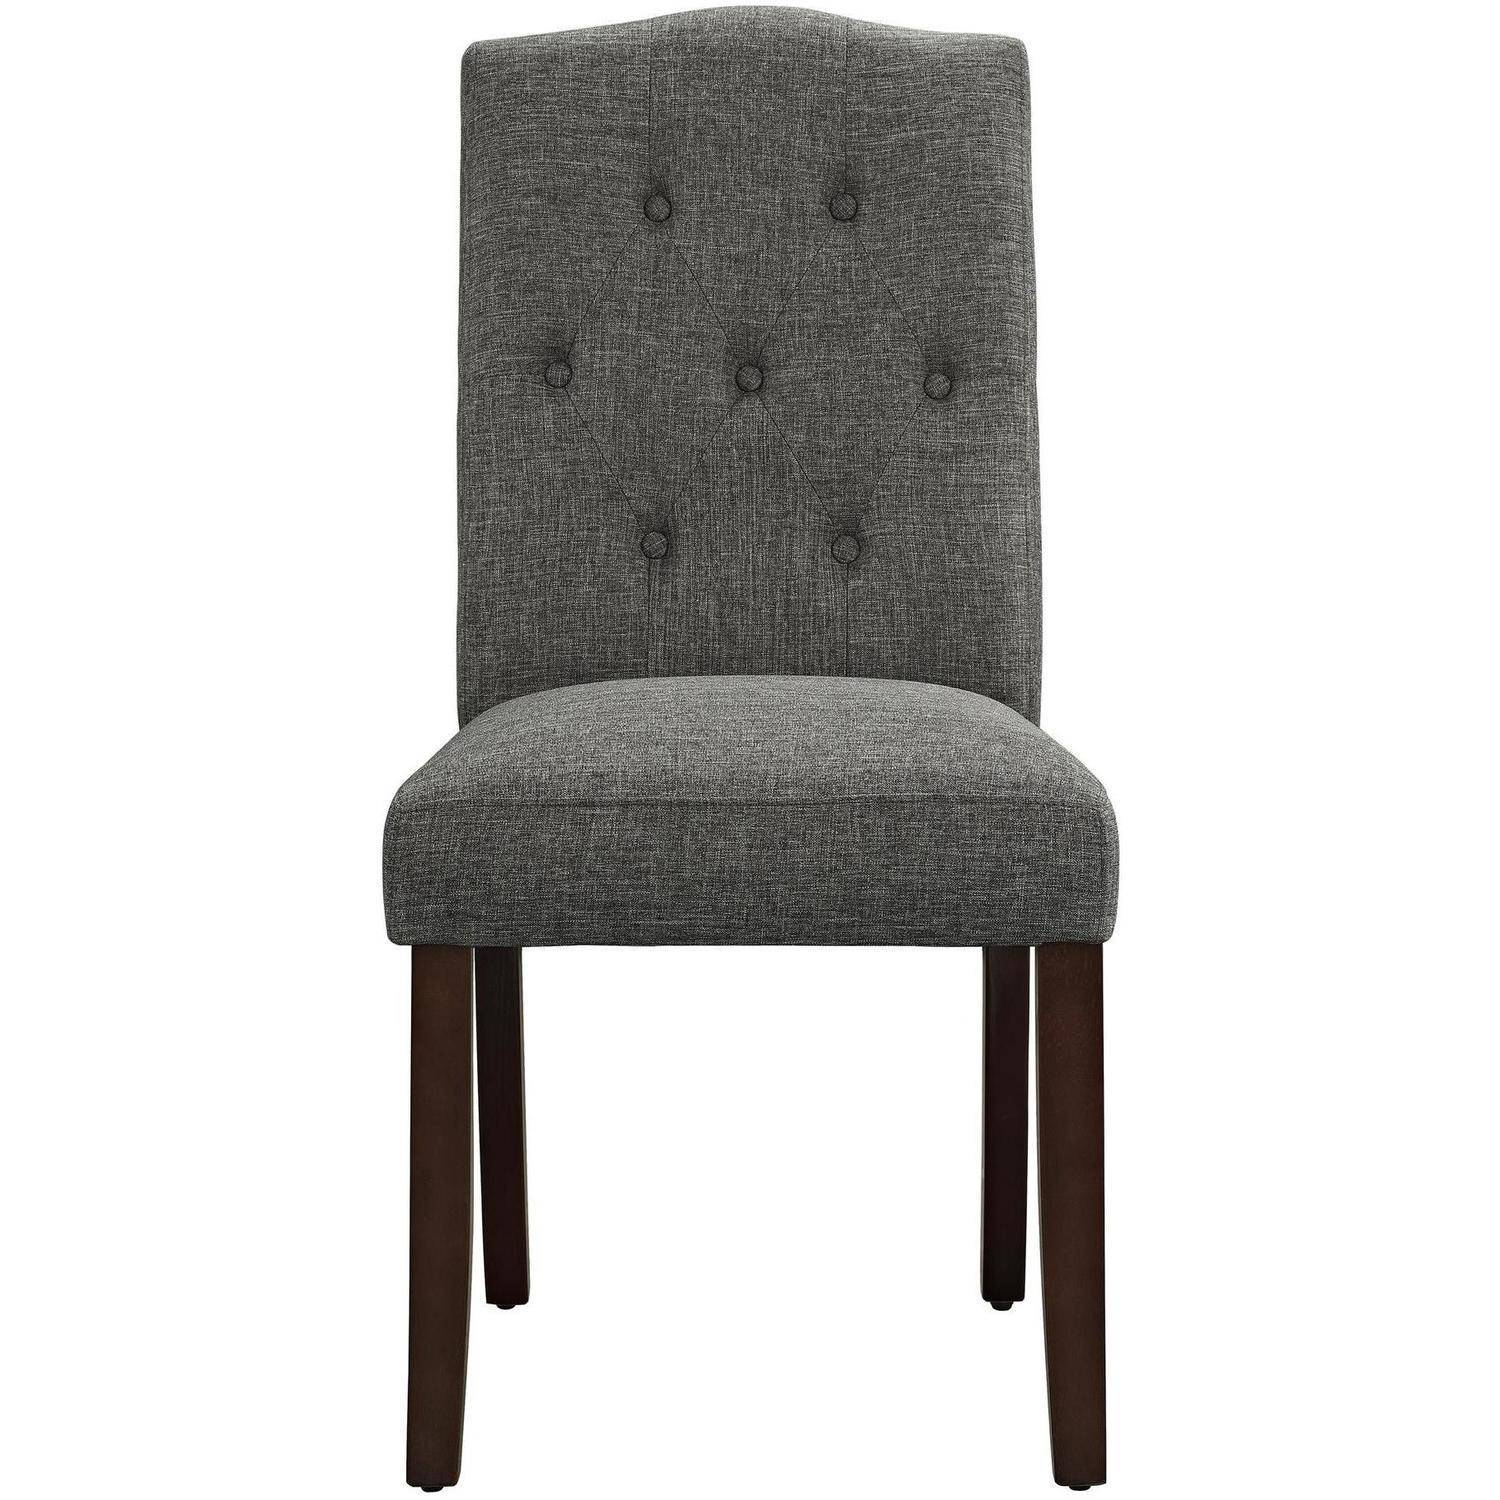 Dining room tufted dining chair upholstered side chairs for Kitchen chairs